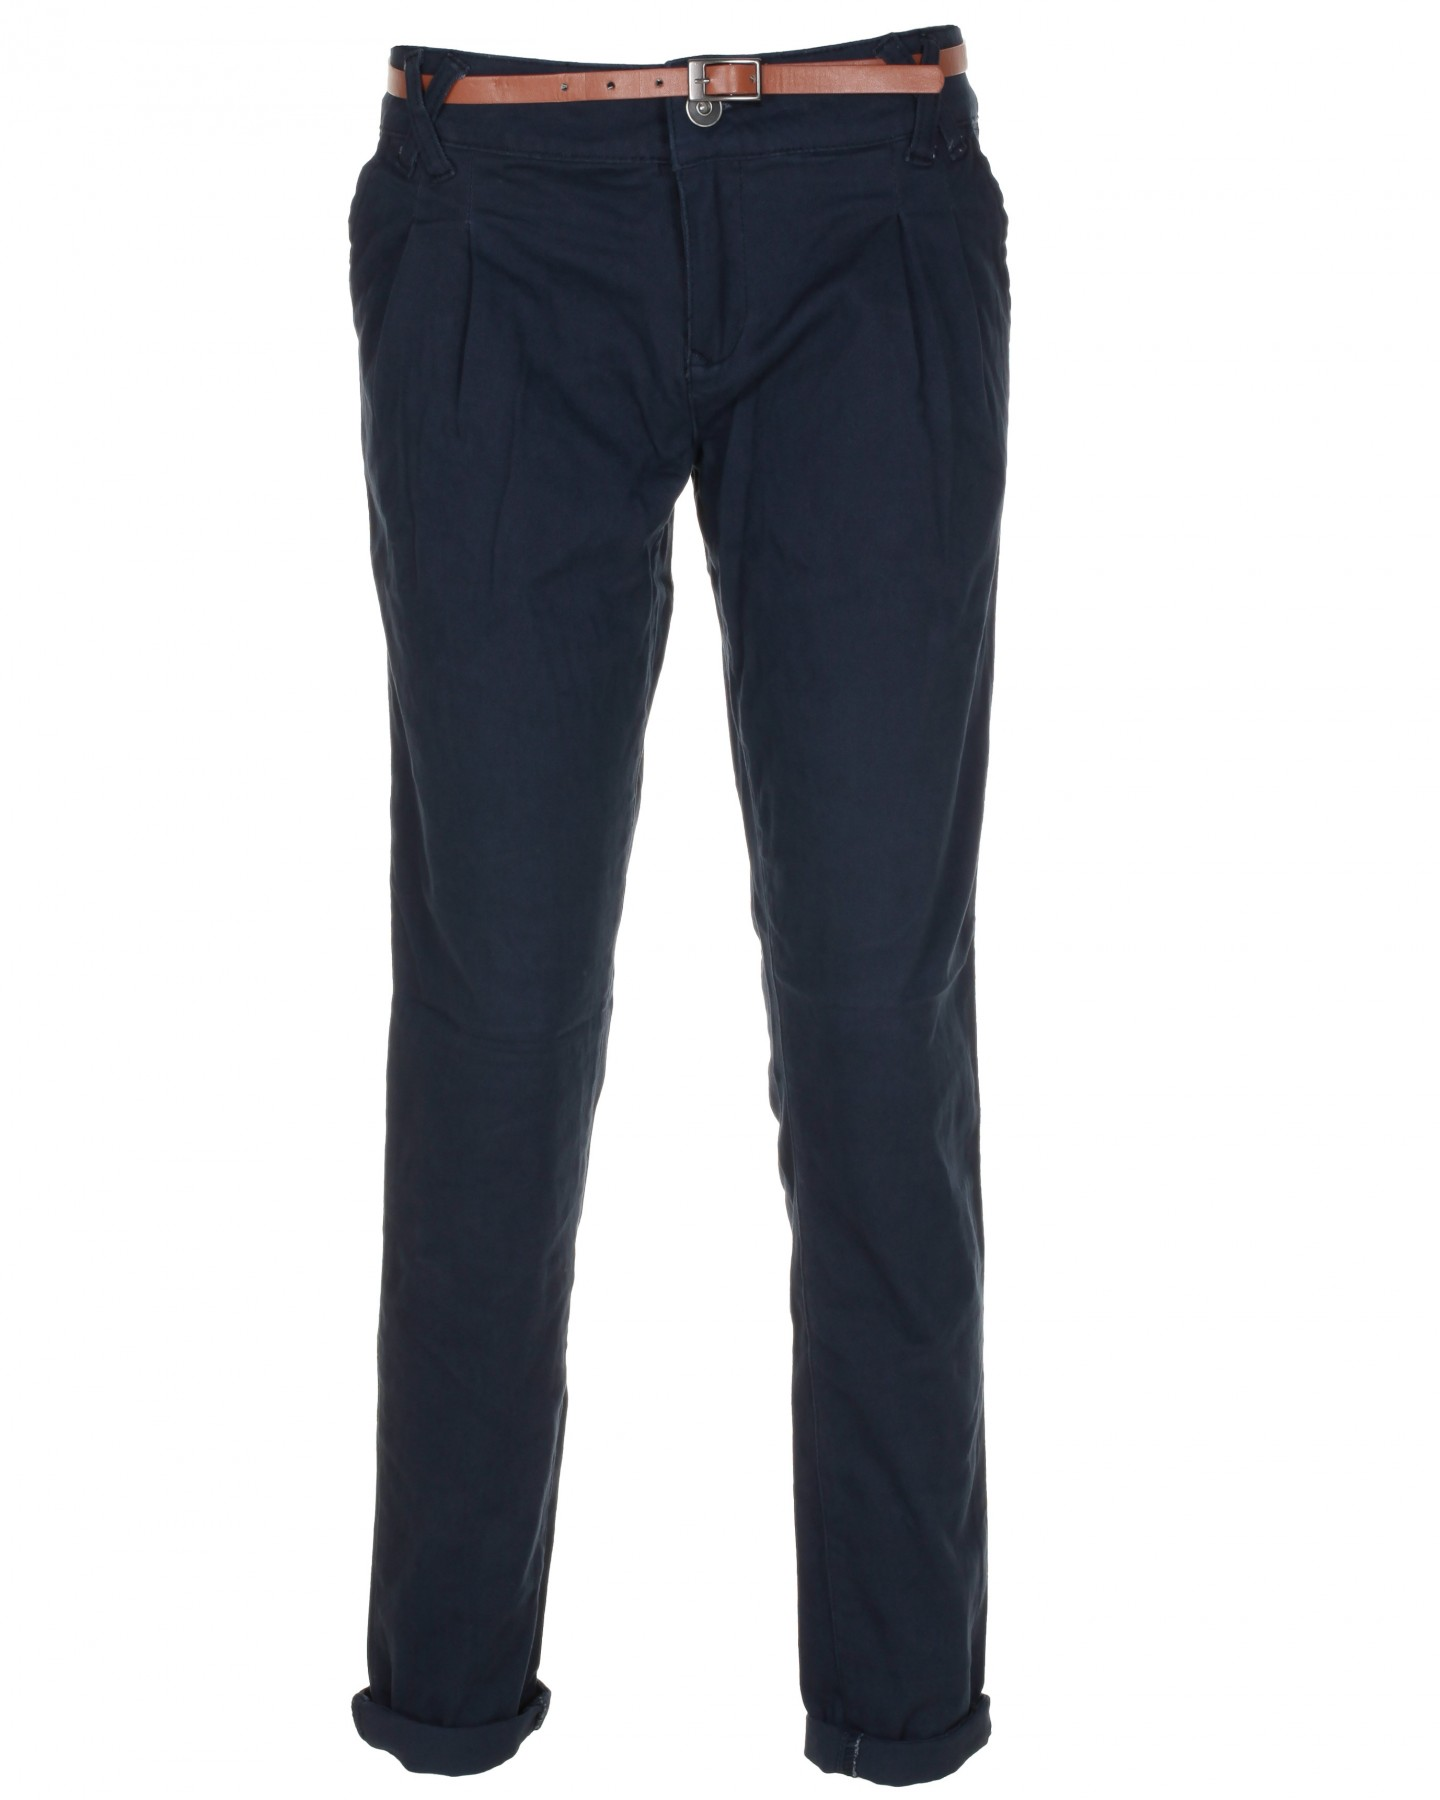 Find great deals on eBay for womens navy blue trousers. Shop with confidence.